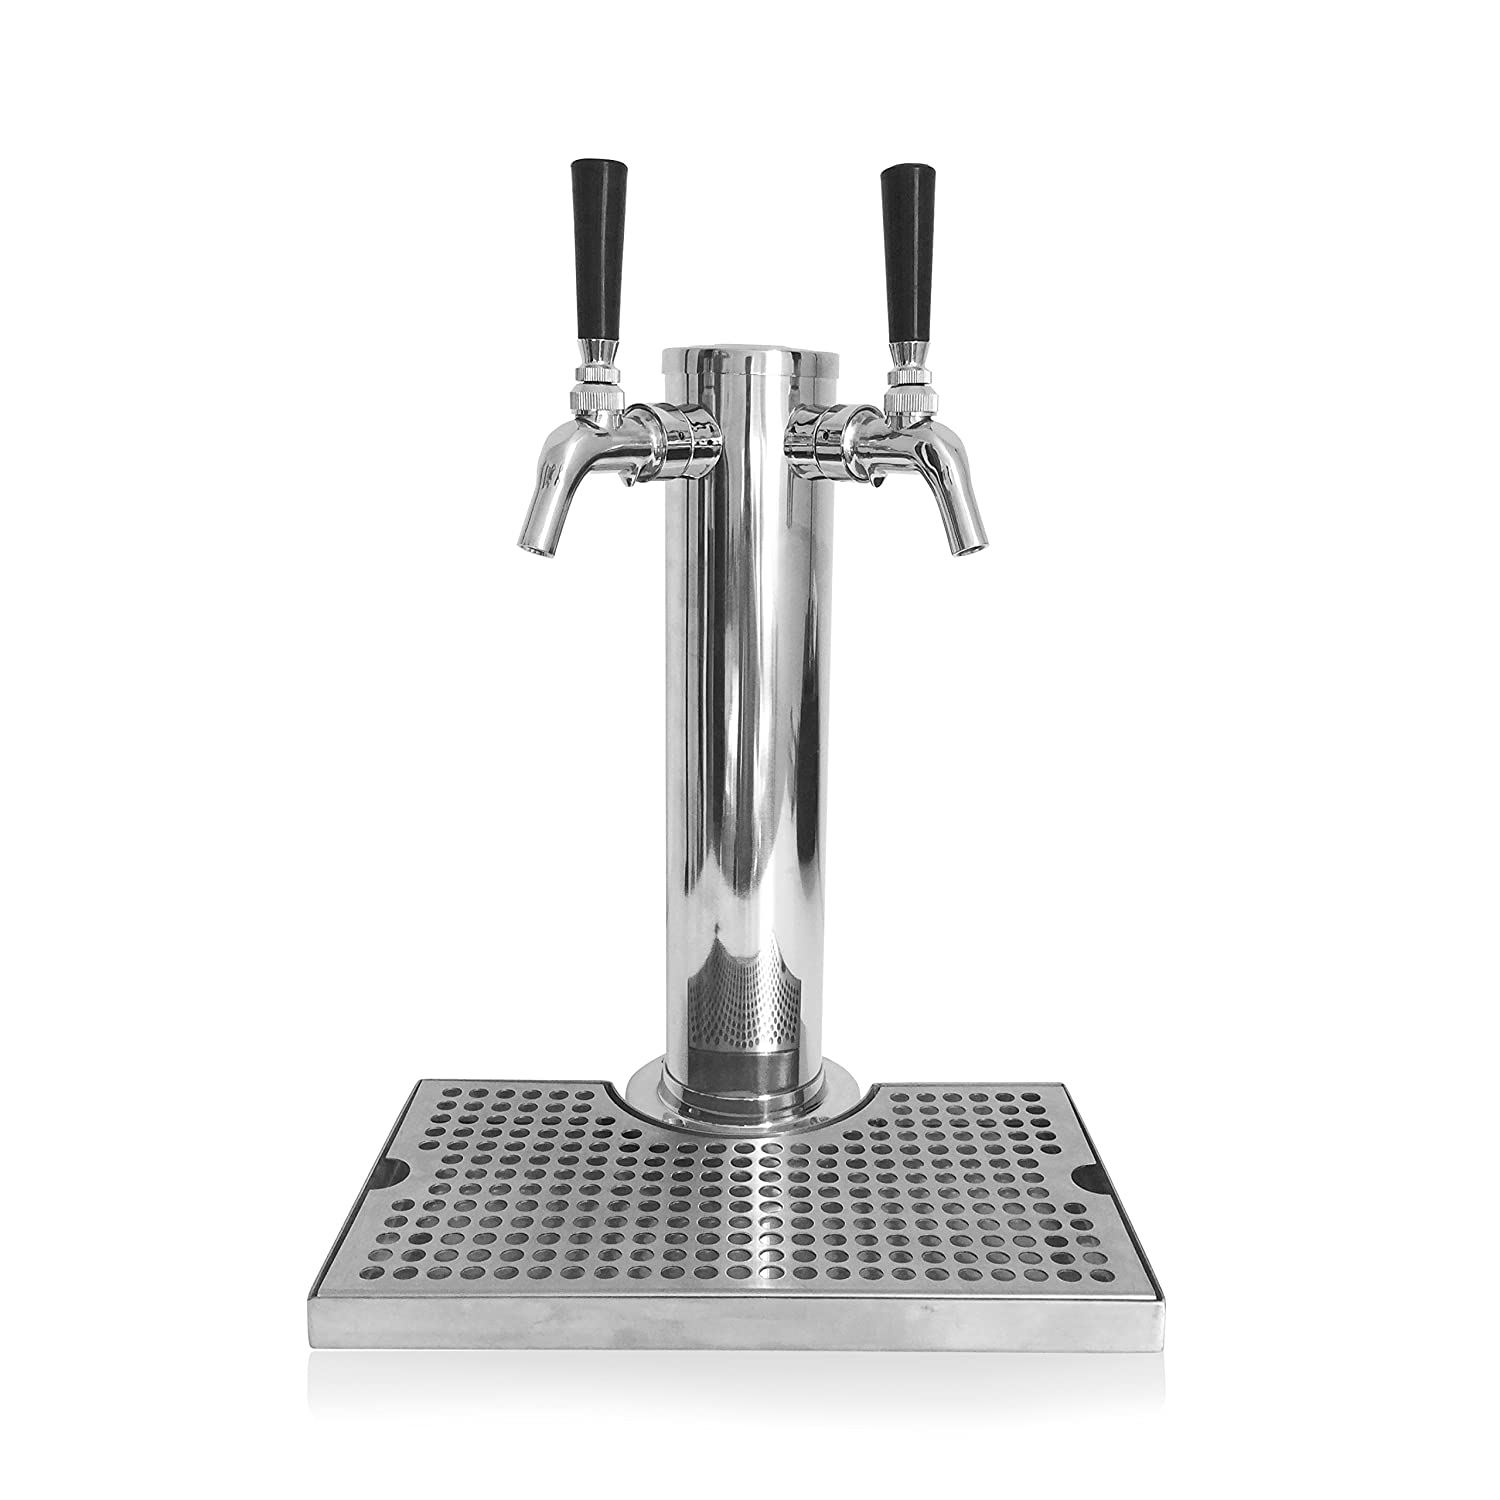 Double 2 Perlick Style Faucets Double Faucet Beer Dispenser 3 Diameter 2 Tap Draft Beer Tower Stainless Steel Kegerator Tower Tap: Conversion Kit 2 Tap Draft Beer Tower 3 Diameter